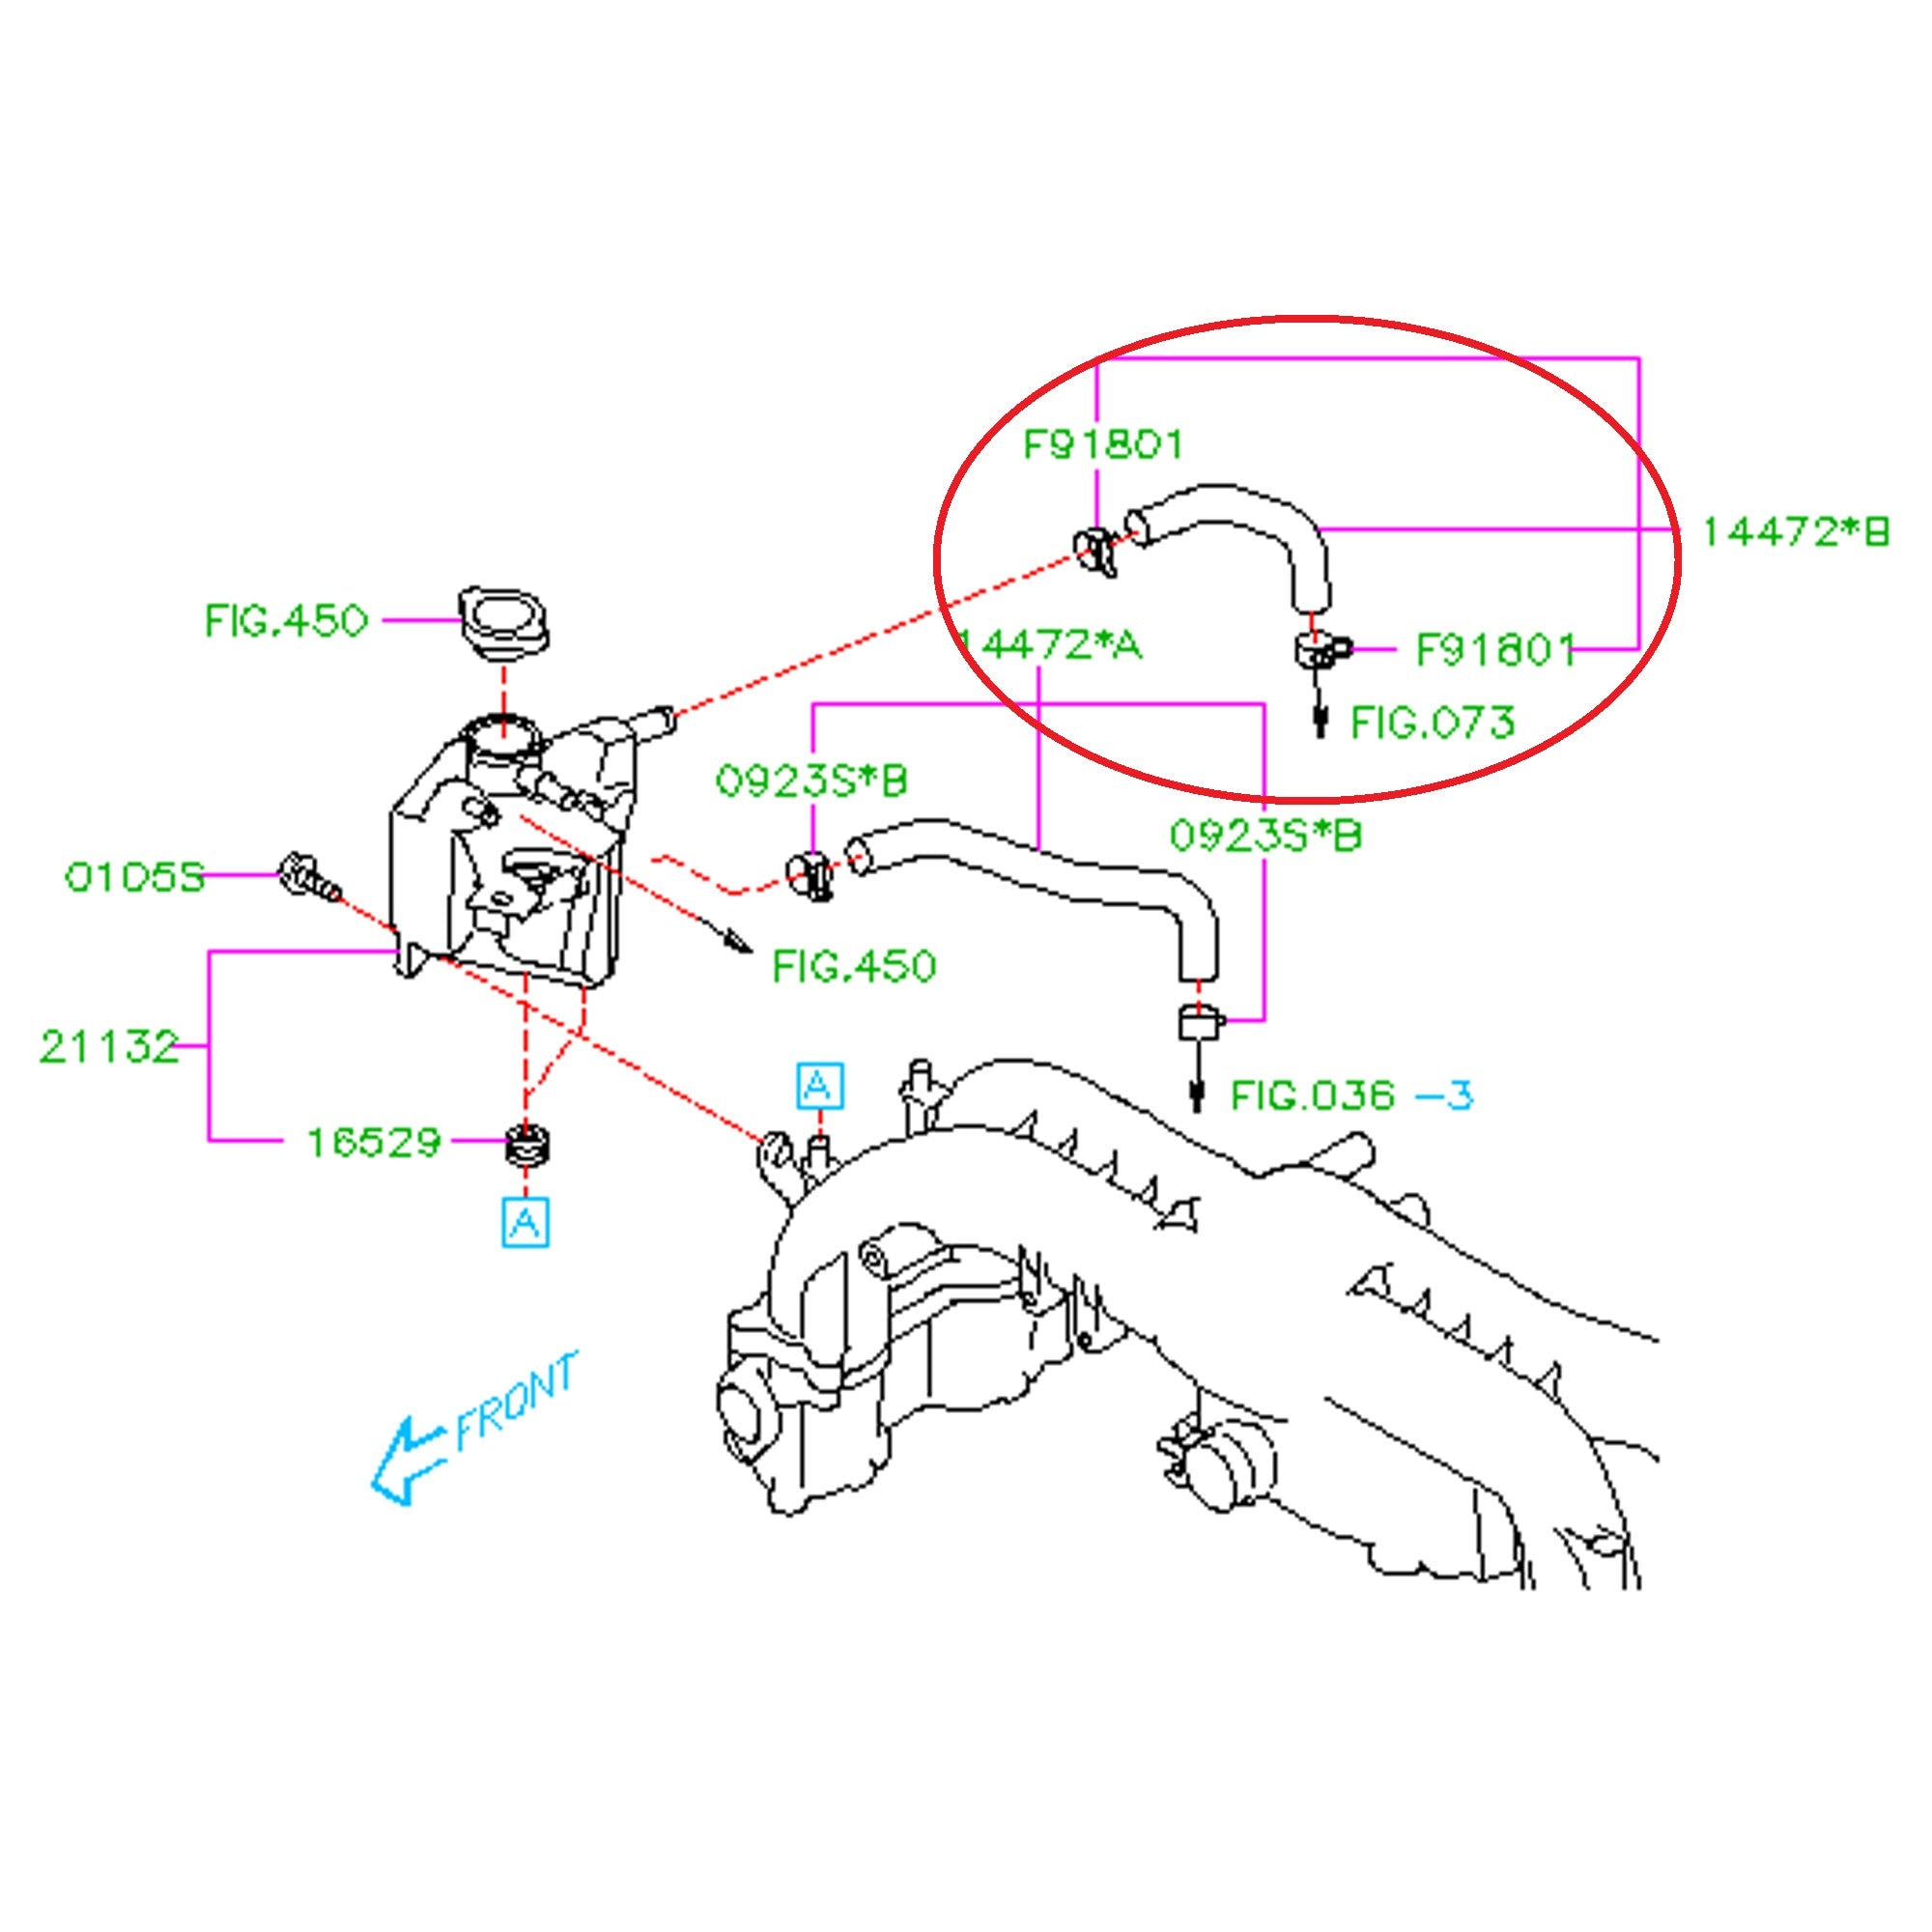 02 Subaru Wrx Wiring Diagram Simple Guide About Impreza 2002 Coolant Hose Product Diagrams Radio